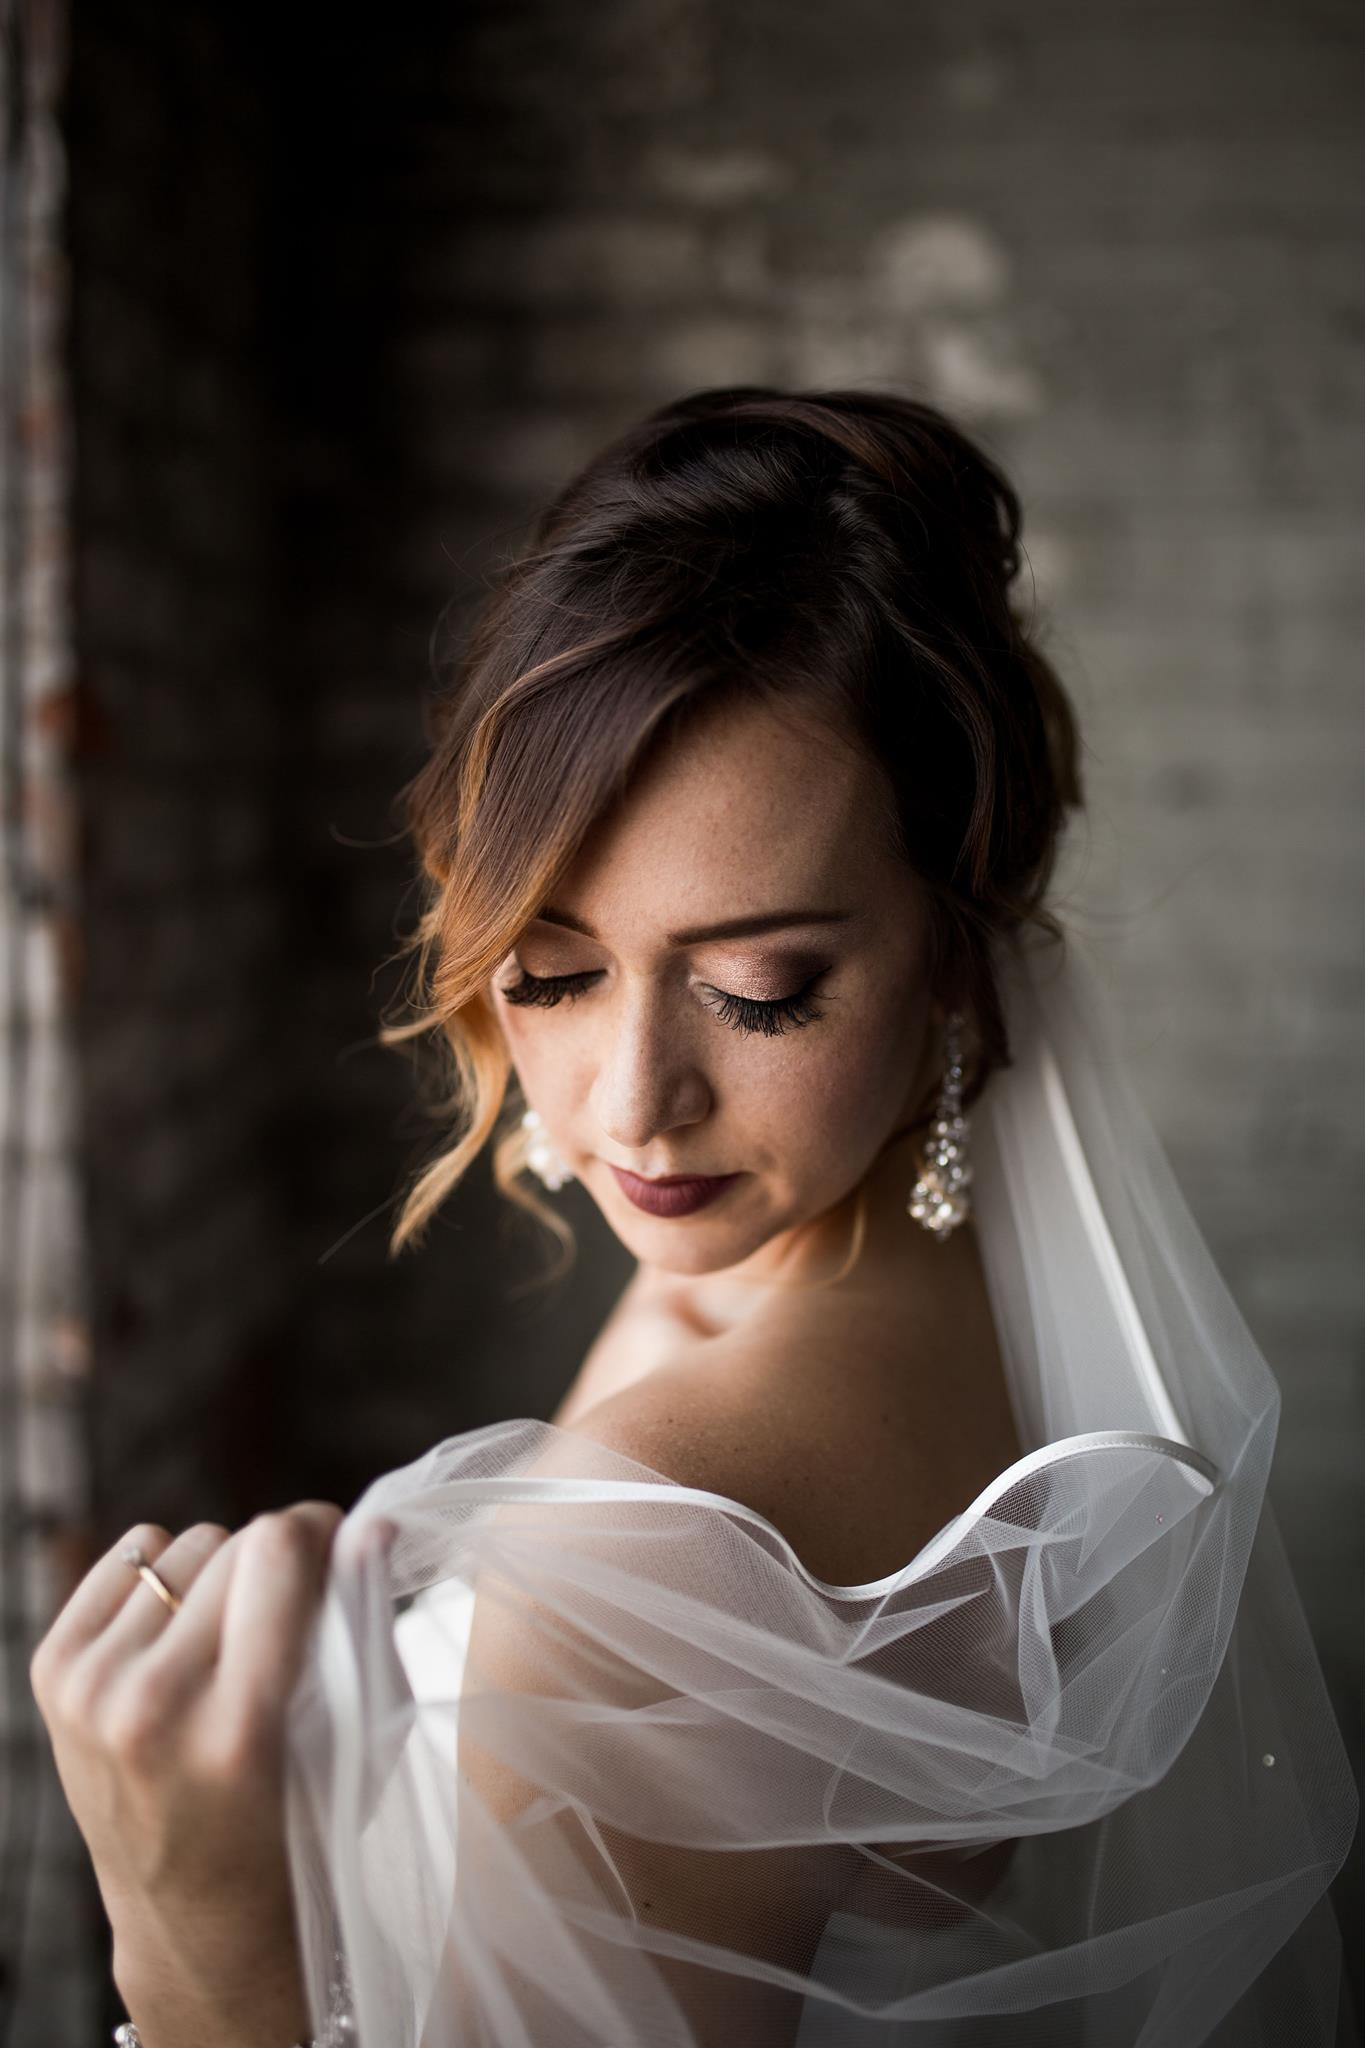 TOLEDO MAKEUP ARTIST. Bridal Makeup in Ohio. Styled shoot with Captured by Hannah Photography, Hafner Florist, Event Prep. Airbrush Makeup Toledo, OH. April 2017.jpg